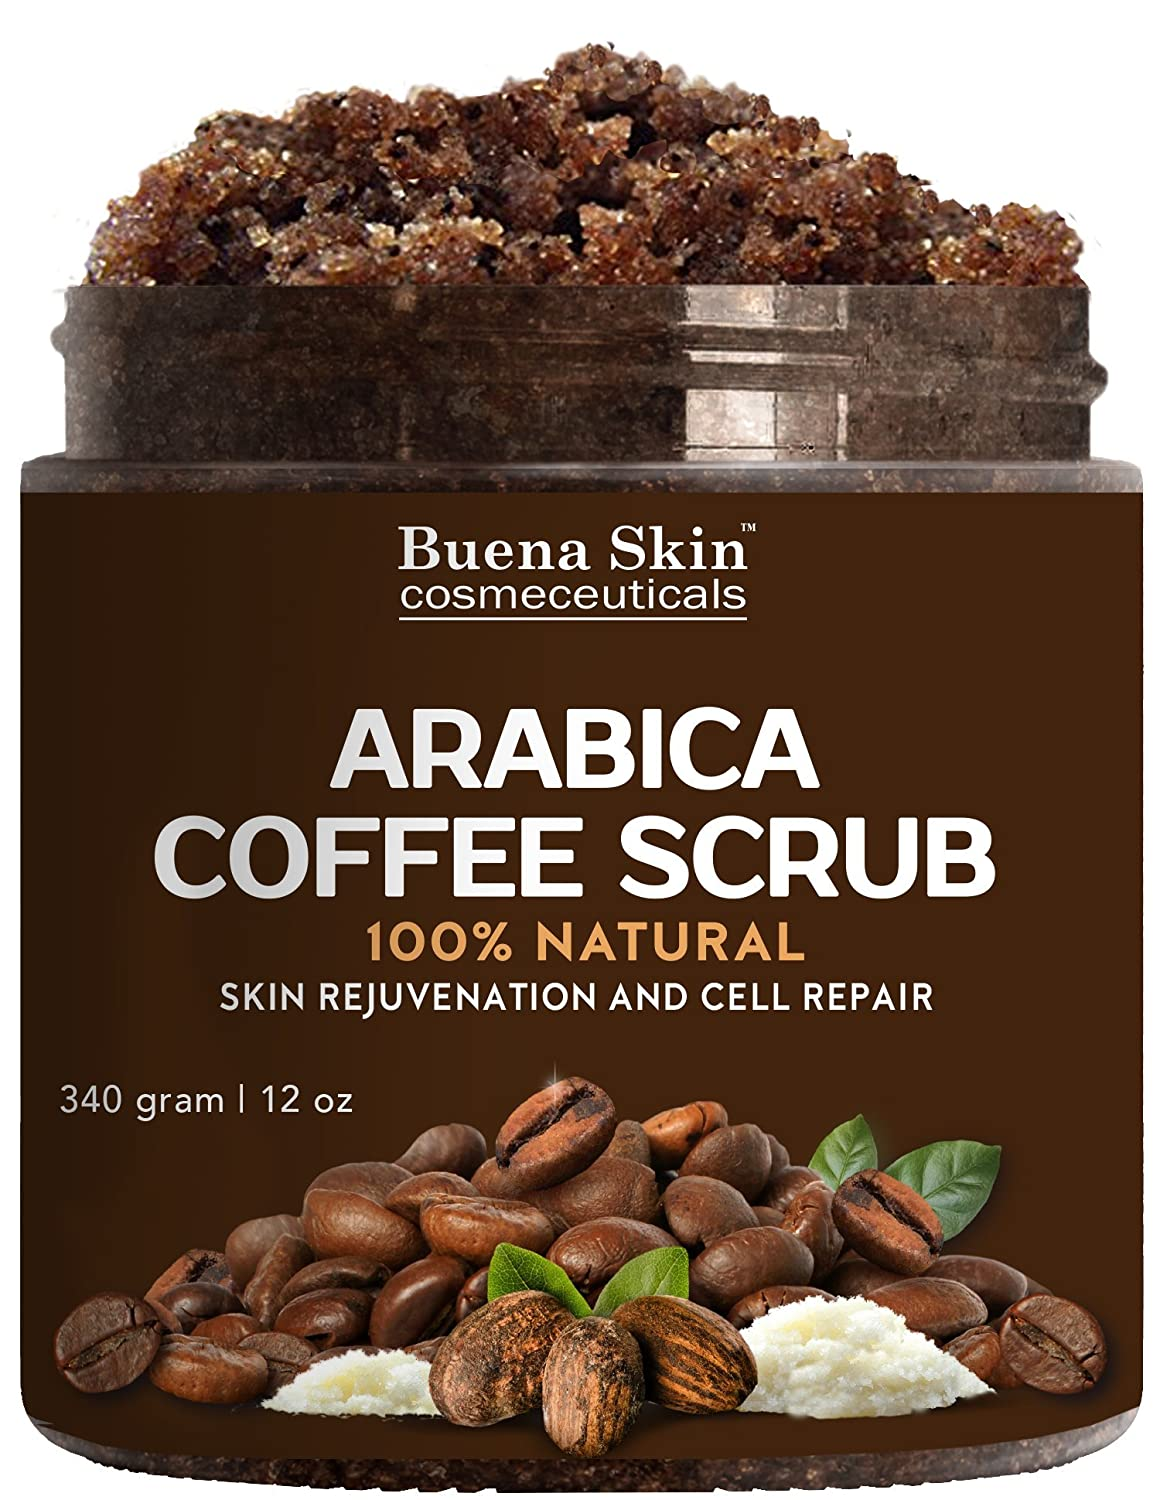 100% Natural Arabica Coffee Scrub, Best Stretch Mark, Acne & Anti Cellulite Treatment, Helps Reduce Spider Veins, Eczema, Age Spots & Varicose Veins - 12 Oz Buena Skin 1117-BS-LAS